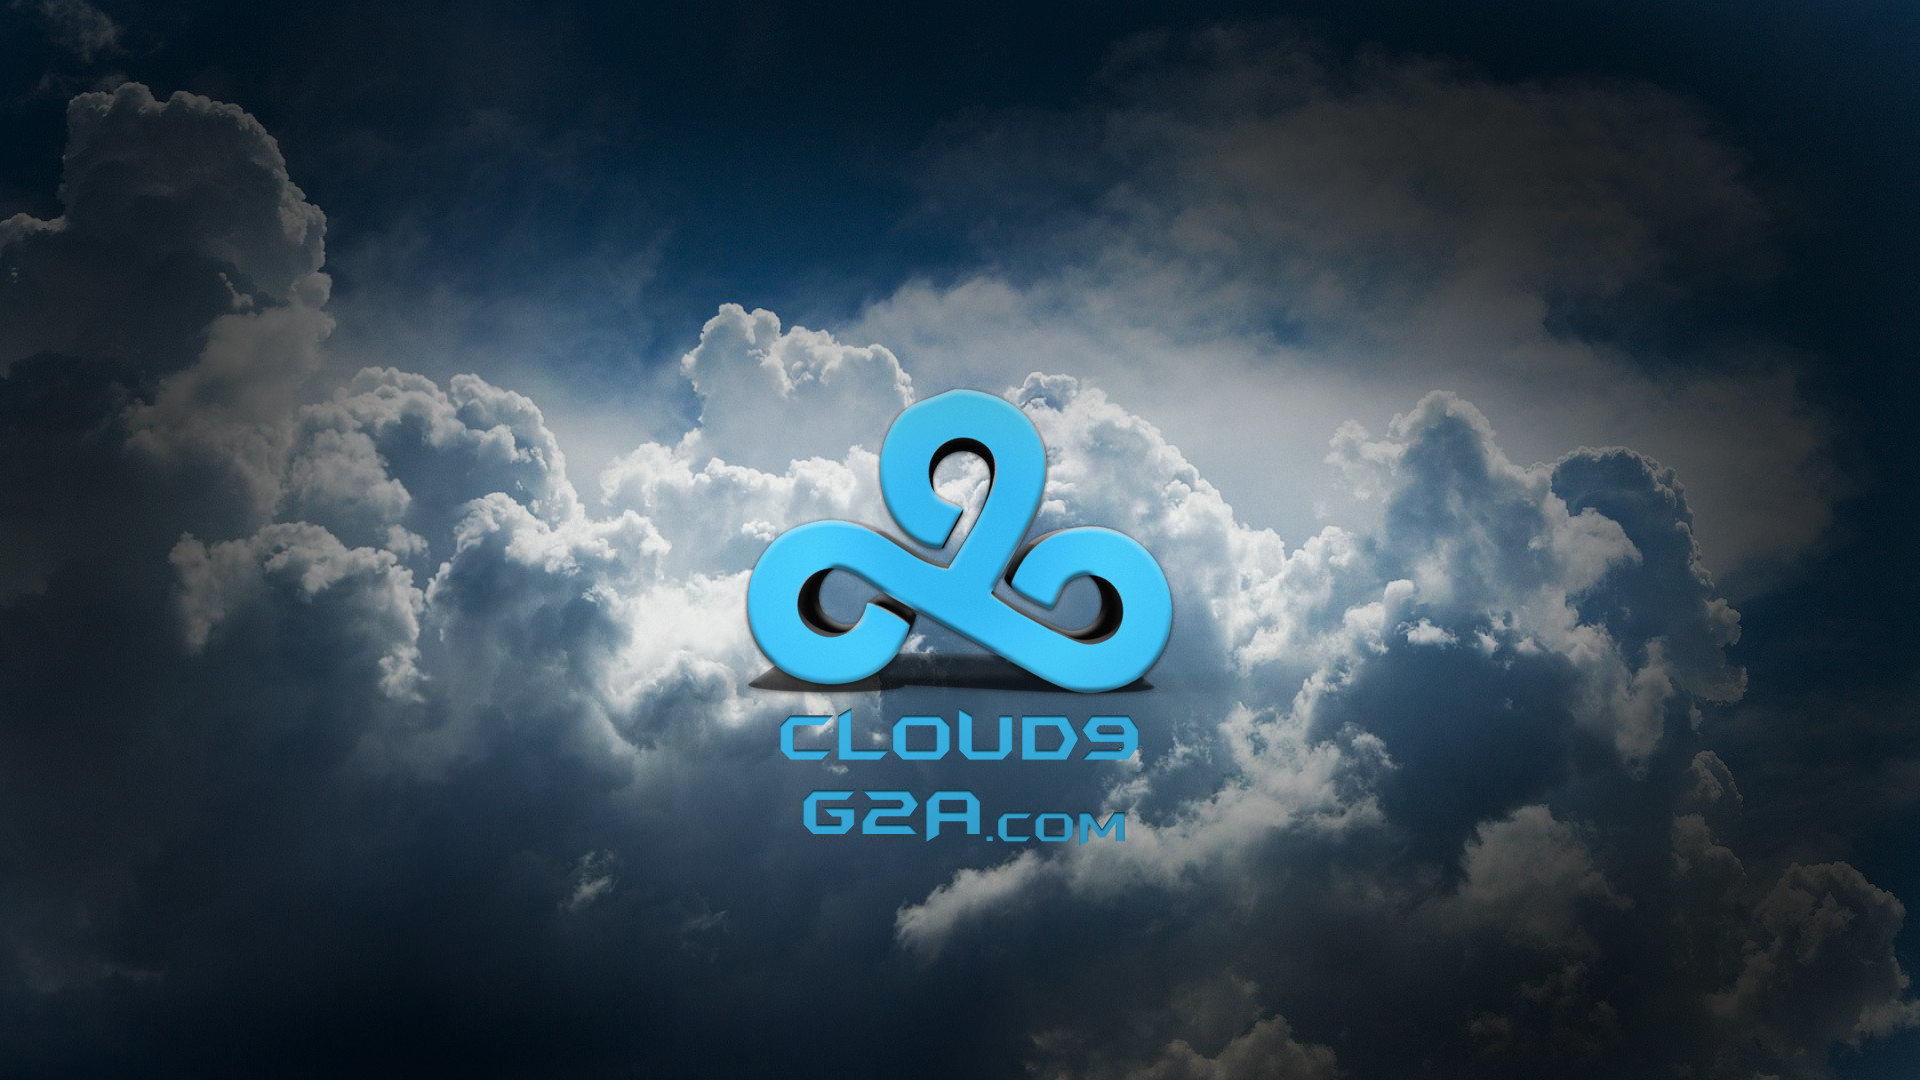 Cloud9 Background HD by zexera Cloud9 Background HD by zexera